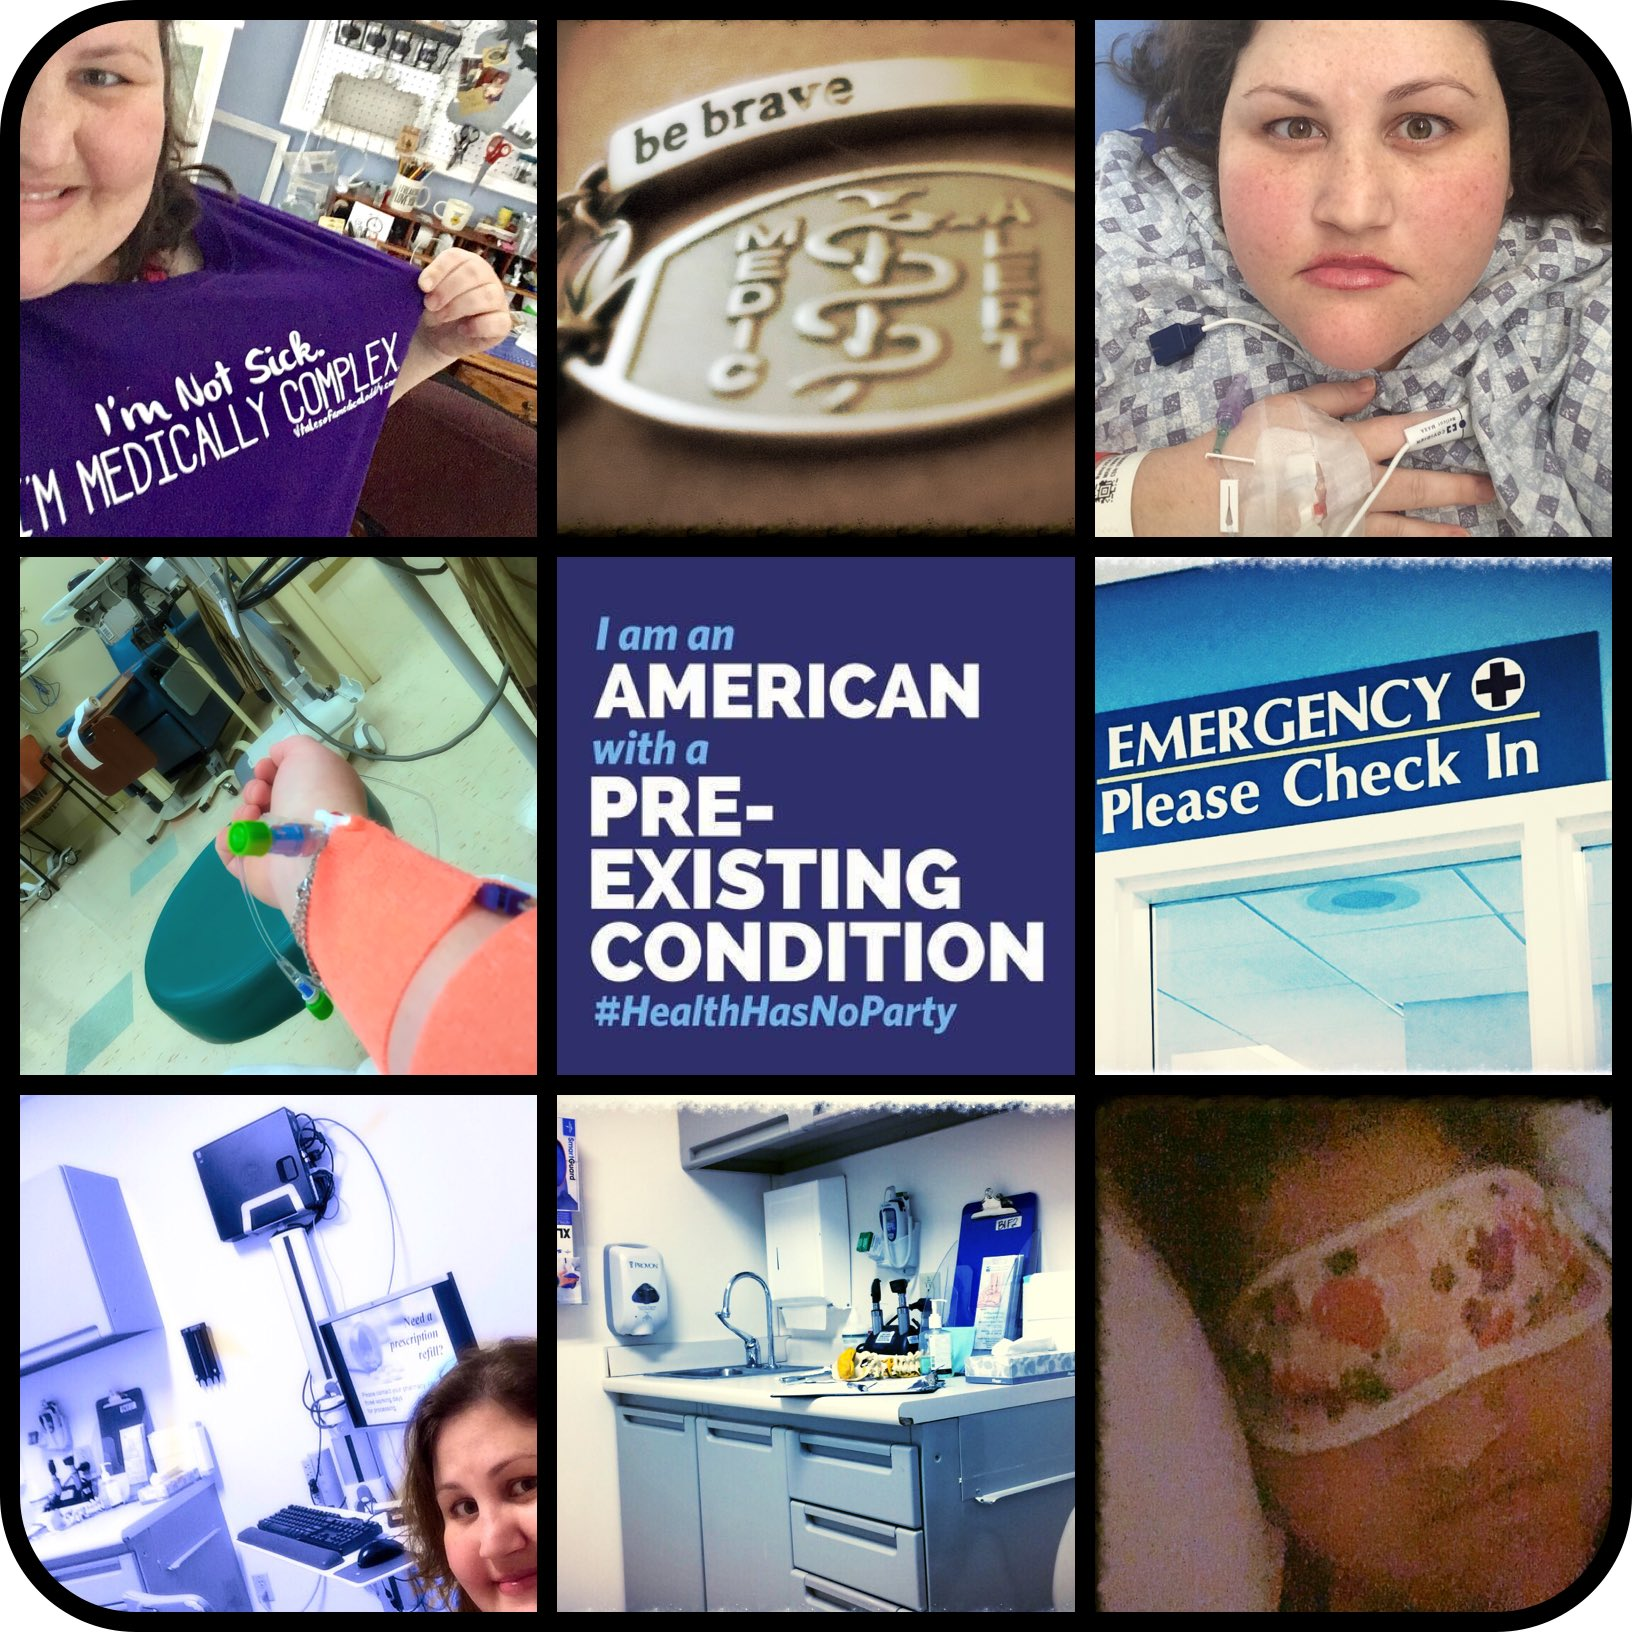 I'm a bundle of pre-existing conditions. Highlights: Cushing's/Trigeminal Neuralgia/CRPS etc.I may be young & sick but my #HealthcareMatters https://t.co/EcVlOQGxVM